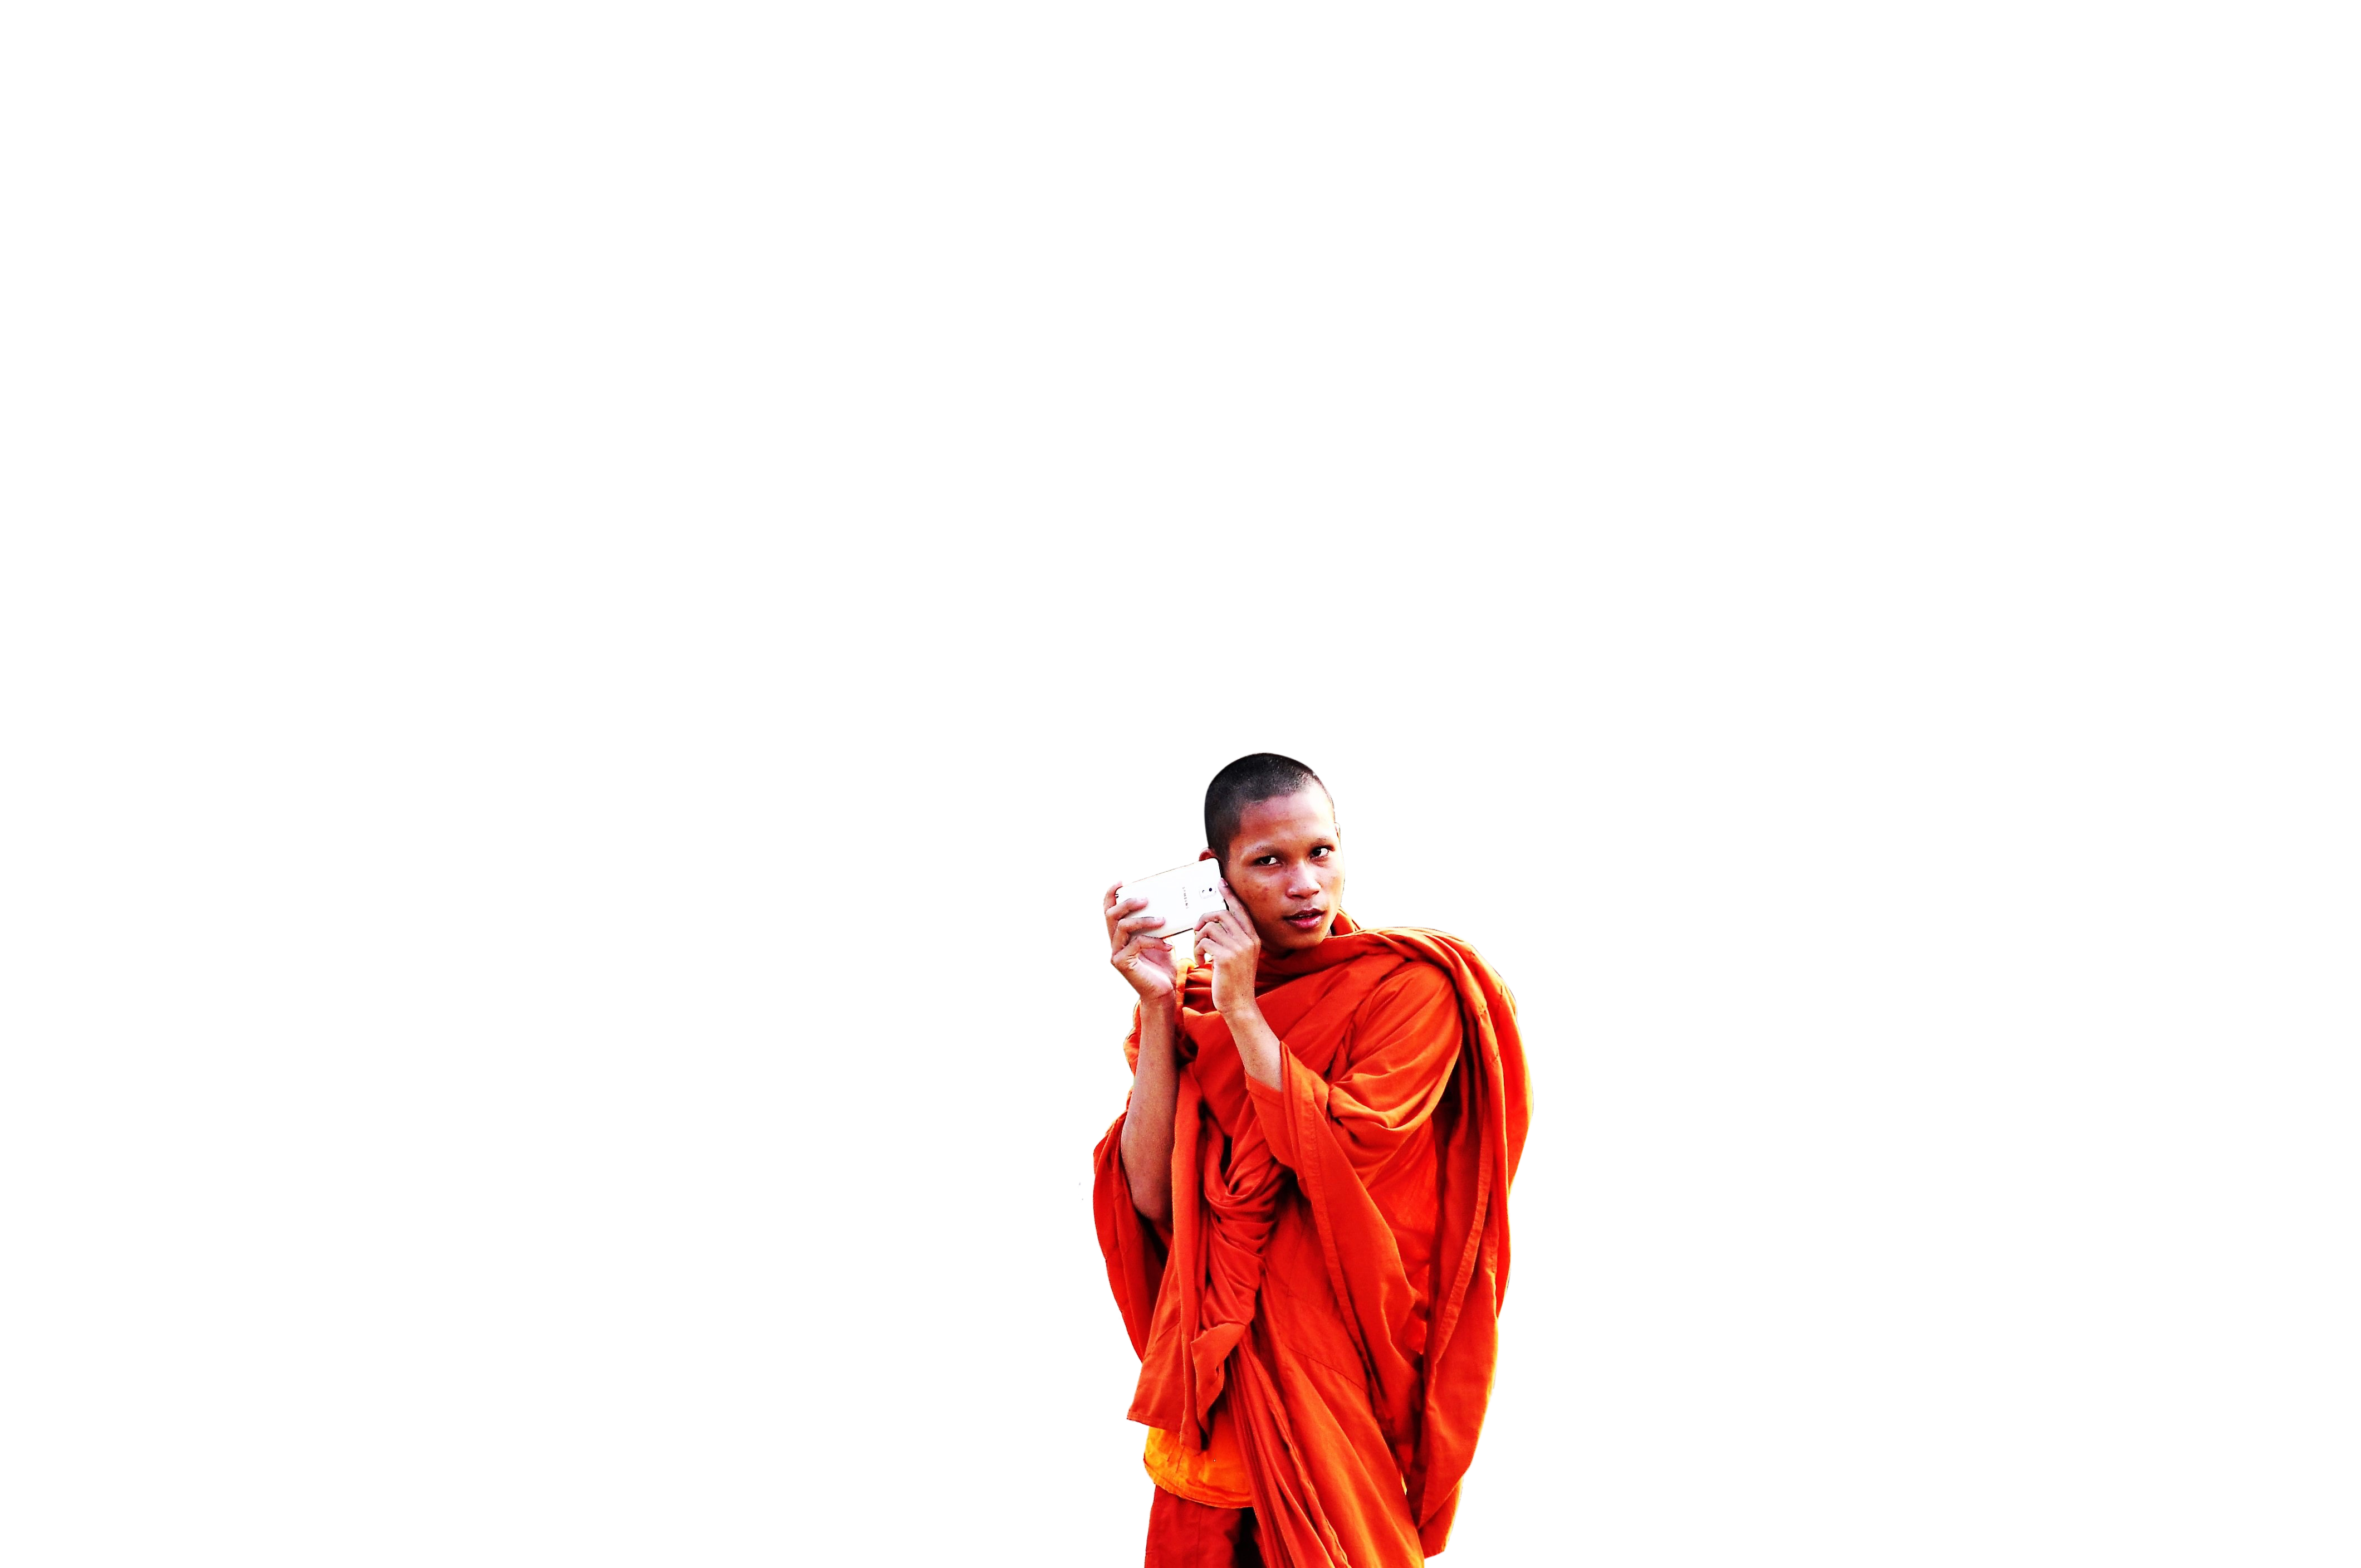 Buddhist in red color with phone in hand transparent background PNG